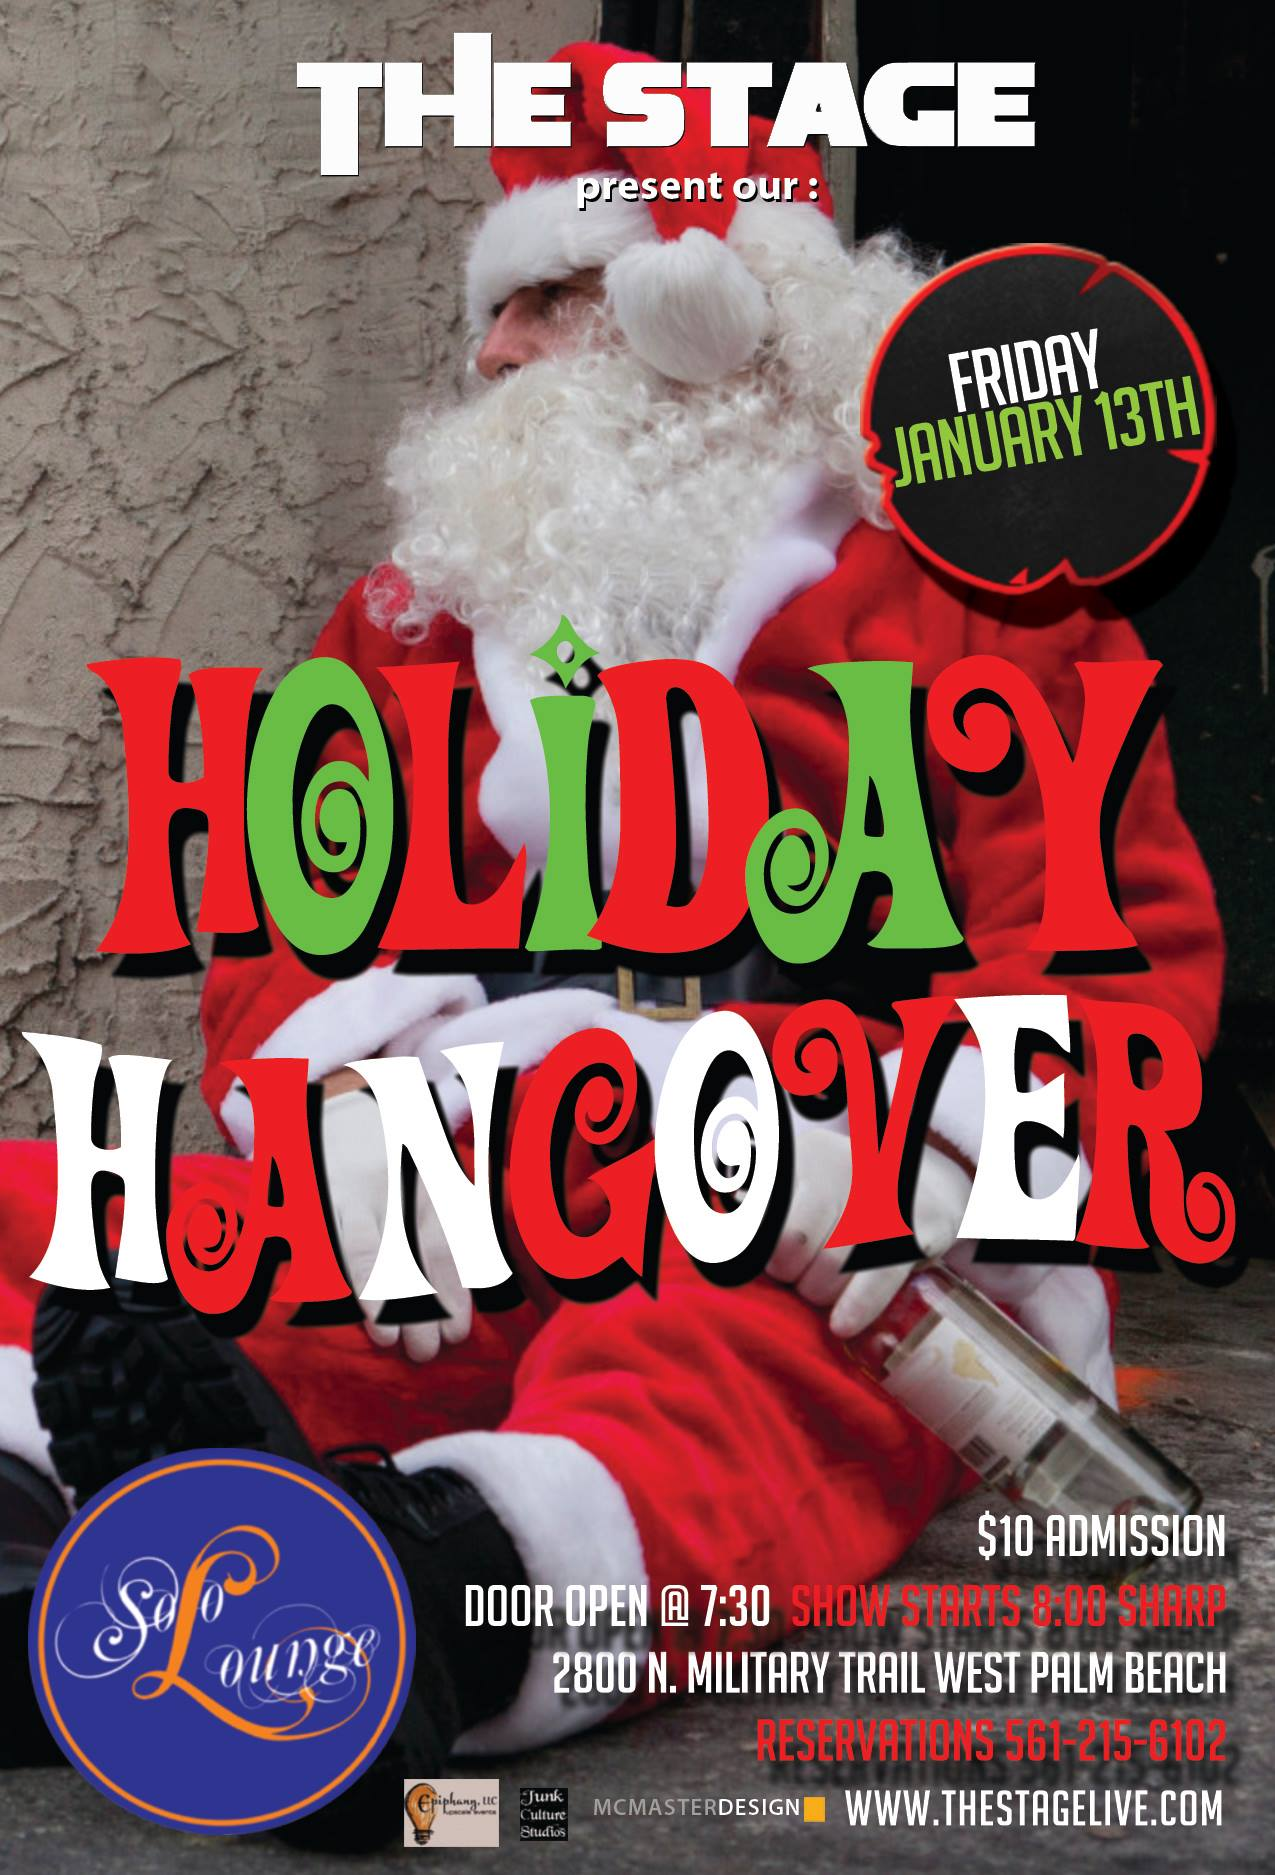 The STAGE presents the Holiday Hangover - Jan 17th